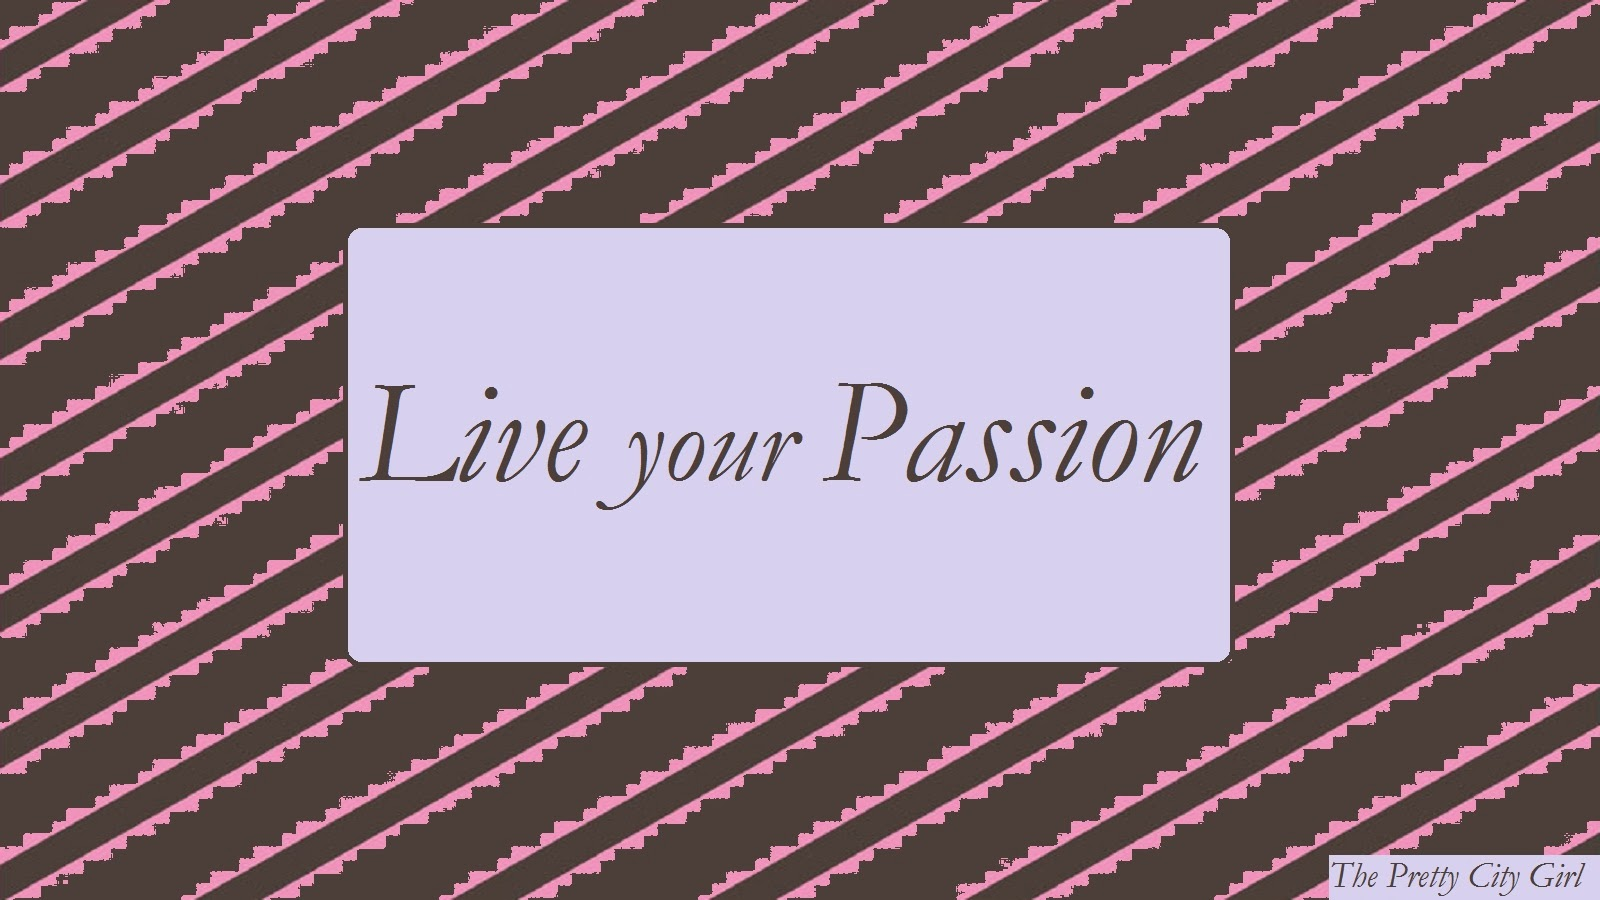 Wallpaper Passion The Pretty City Girl Indian Travel Free Patterns My Little Citygirl